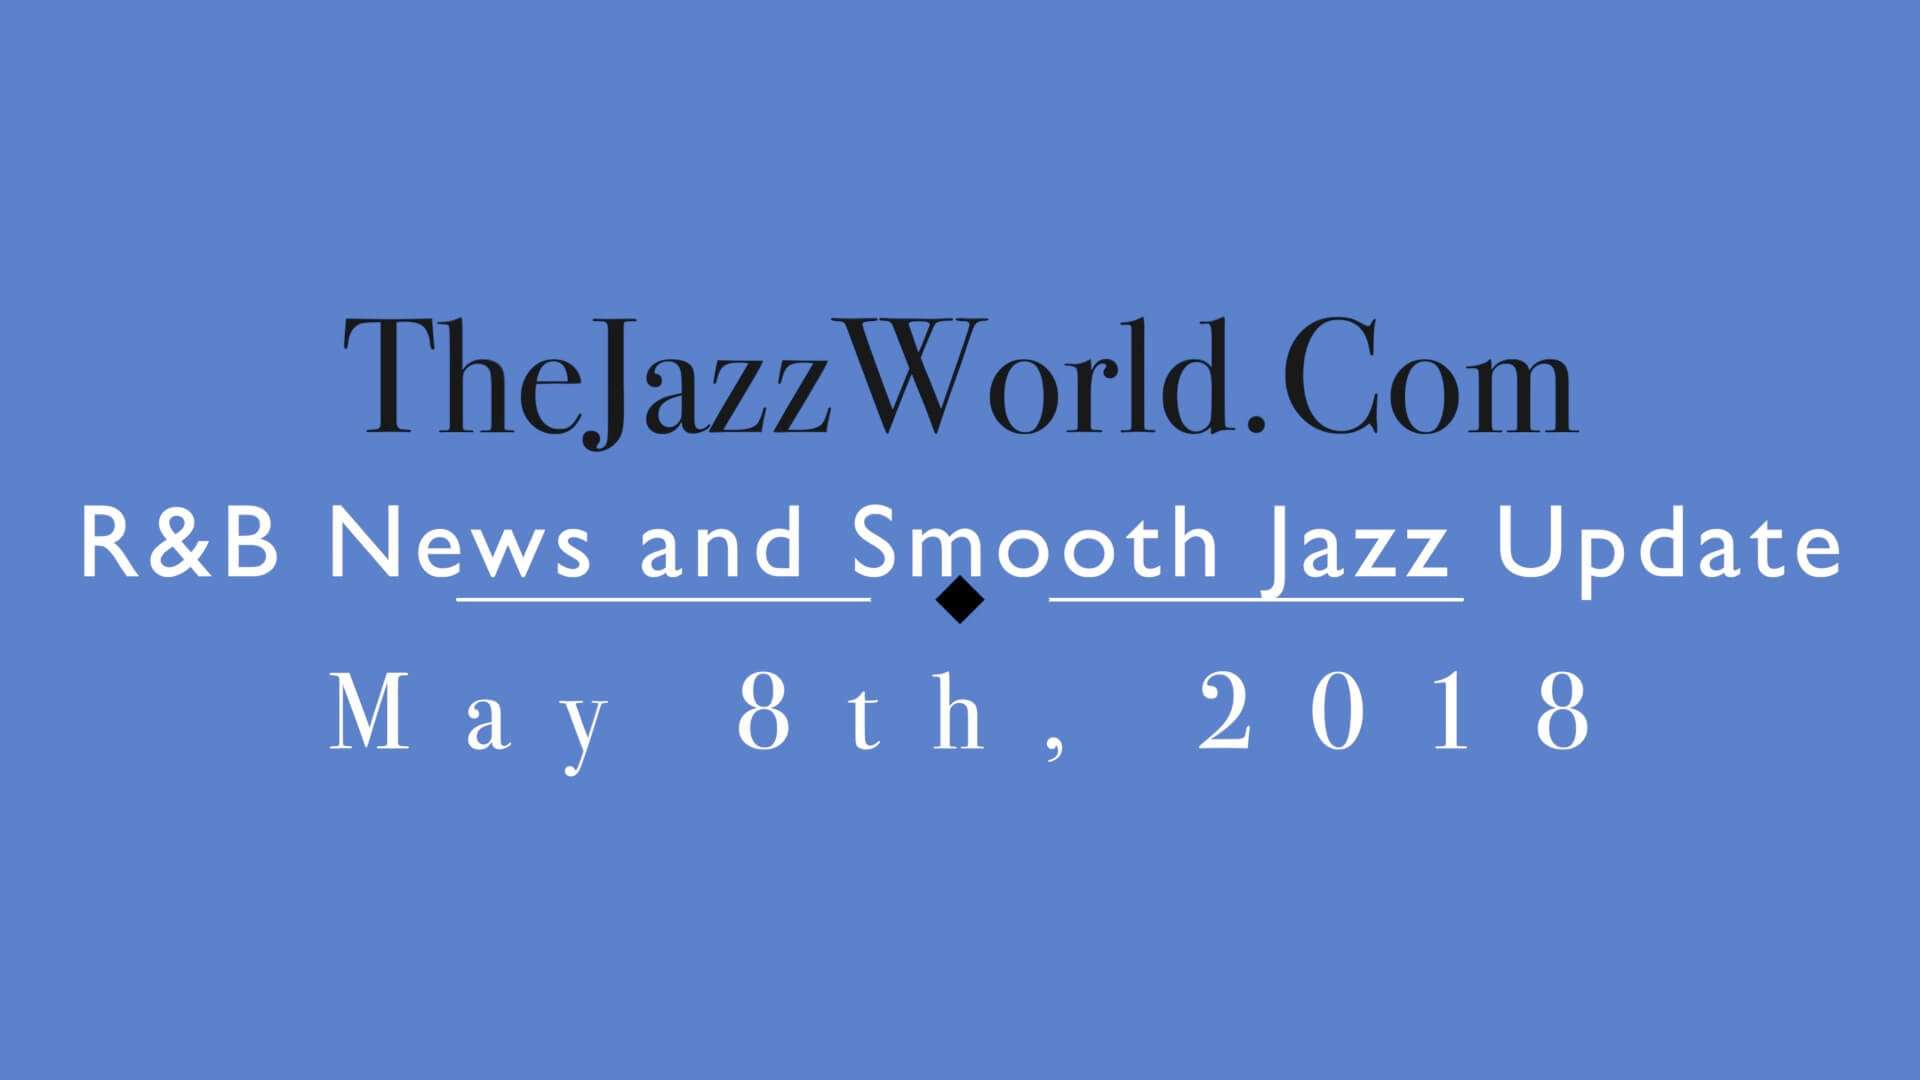 Latest R&B News and Smooth Jazz Update May 8th